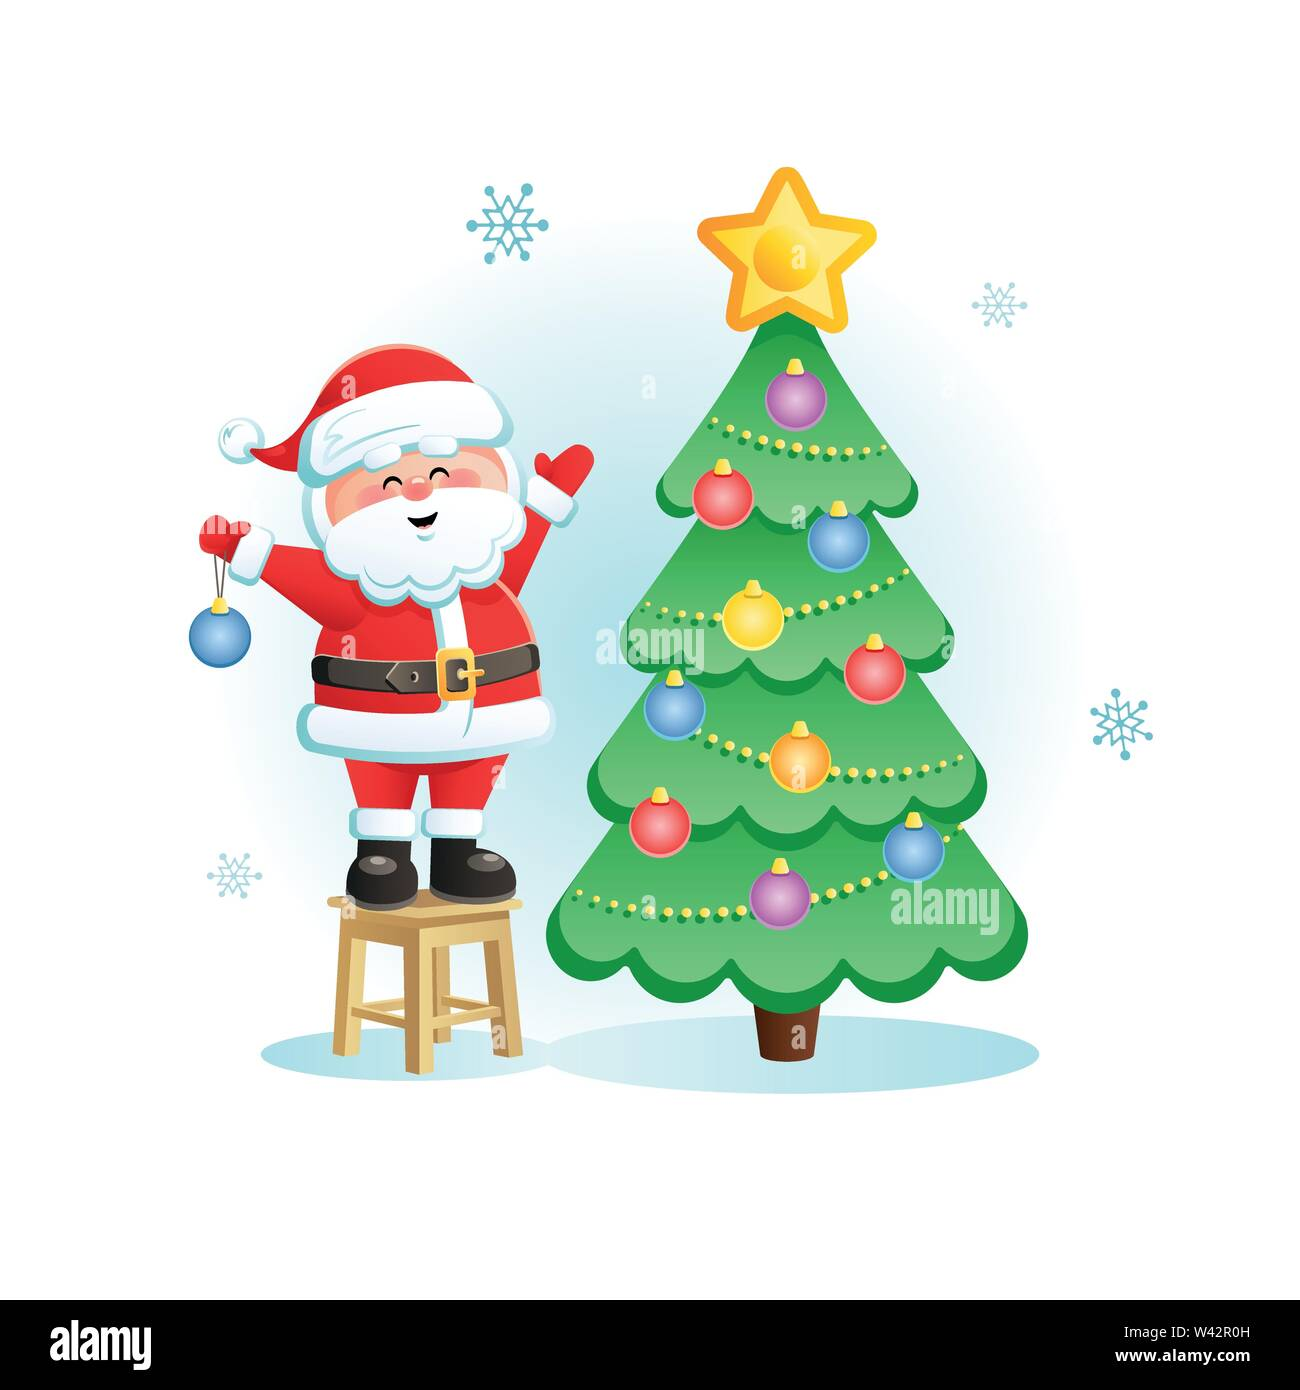 Cartoon Tree Stock Photos & Cartoon Tree Stock Images - Alamy